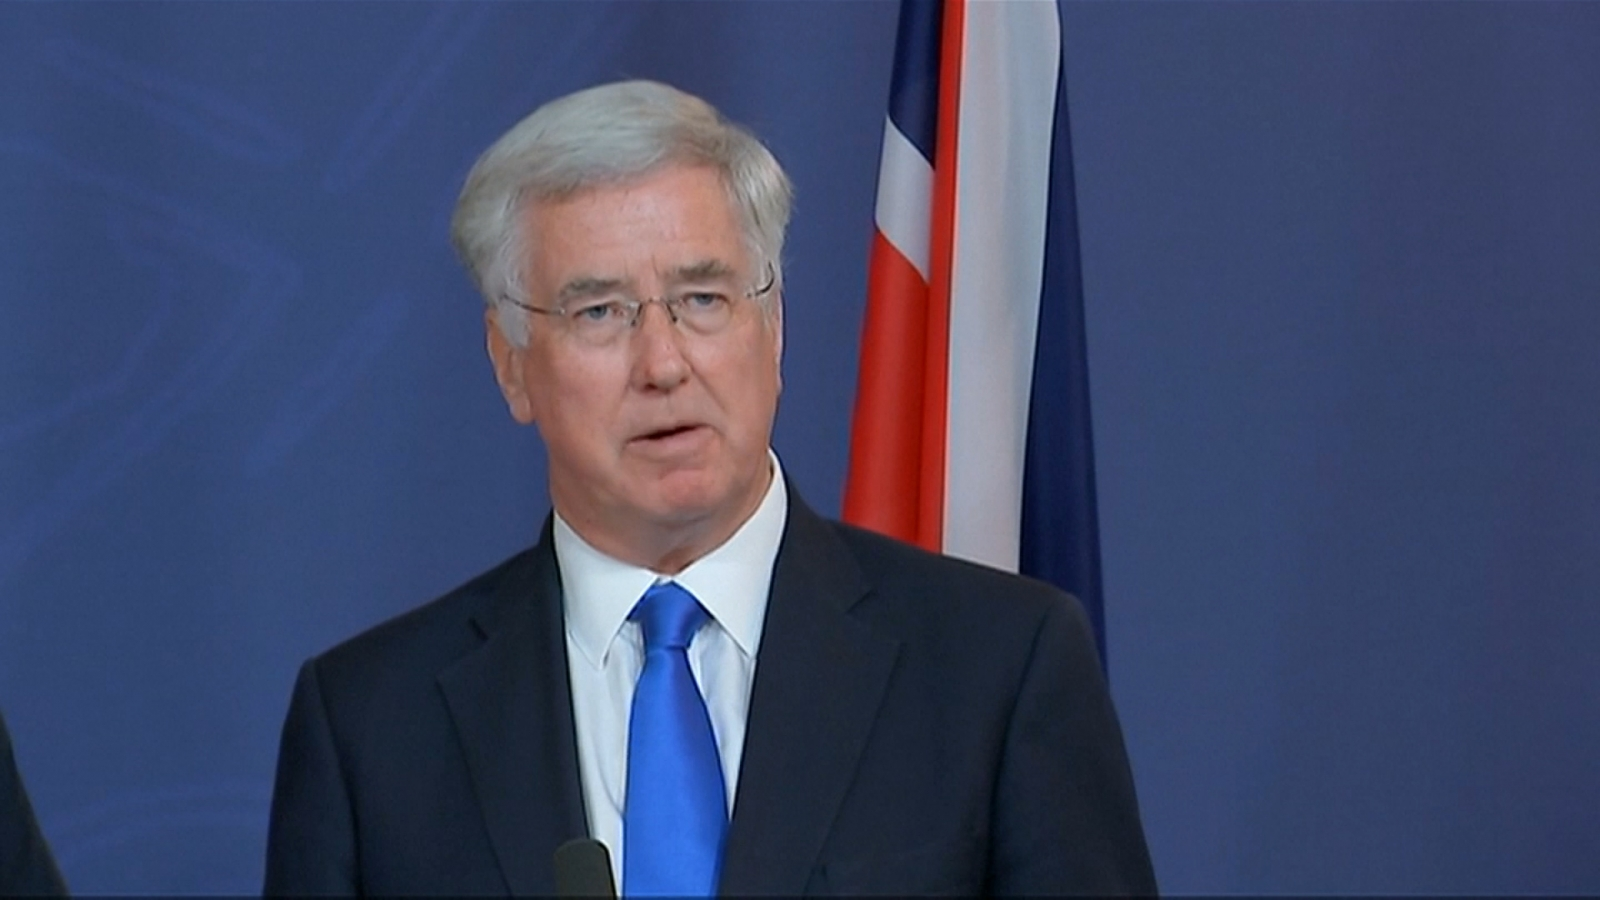 UK Defence Secretary: Beijing responsible for getting North Korea to abandon nuclear program